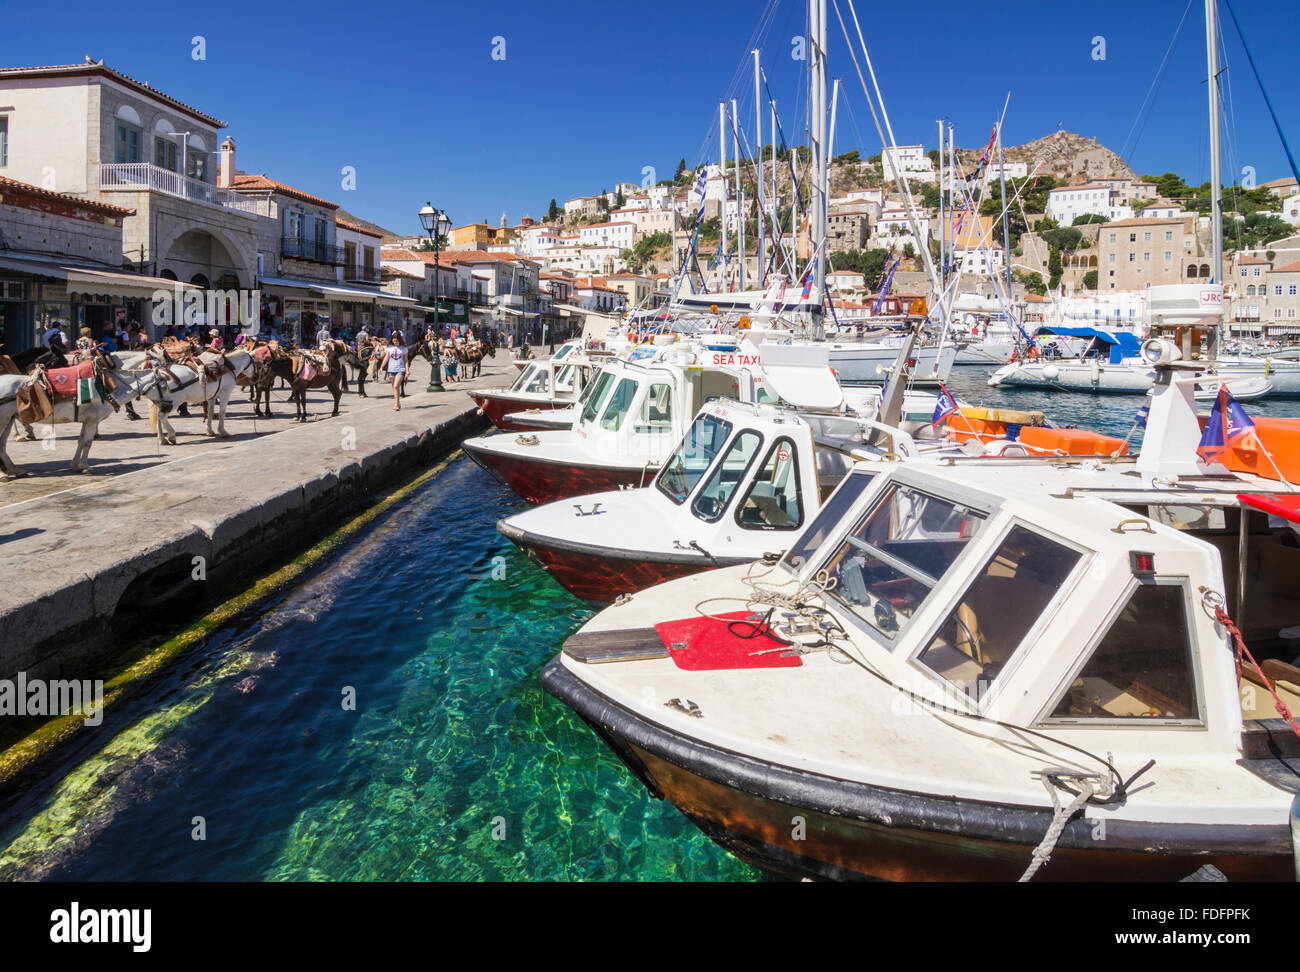 Boats moored along Hydra Town's waterfront, Hydra Island, Greece - Stock Image